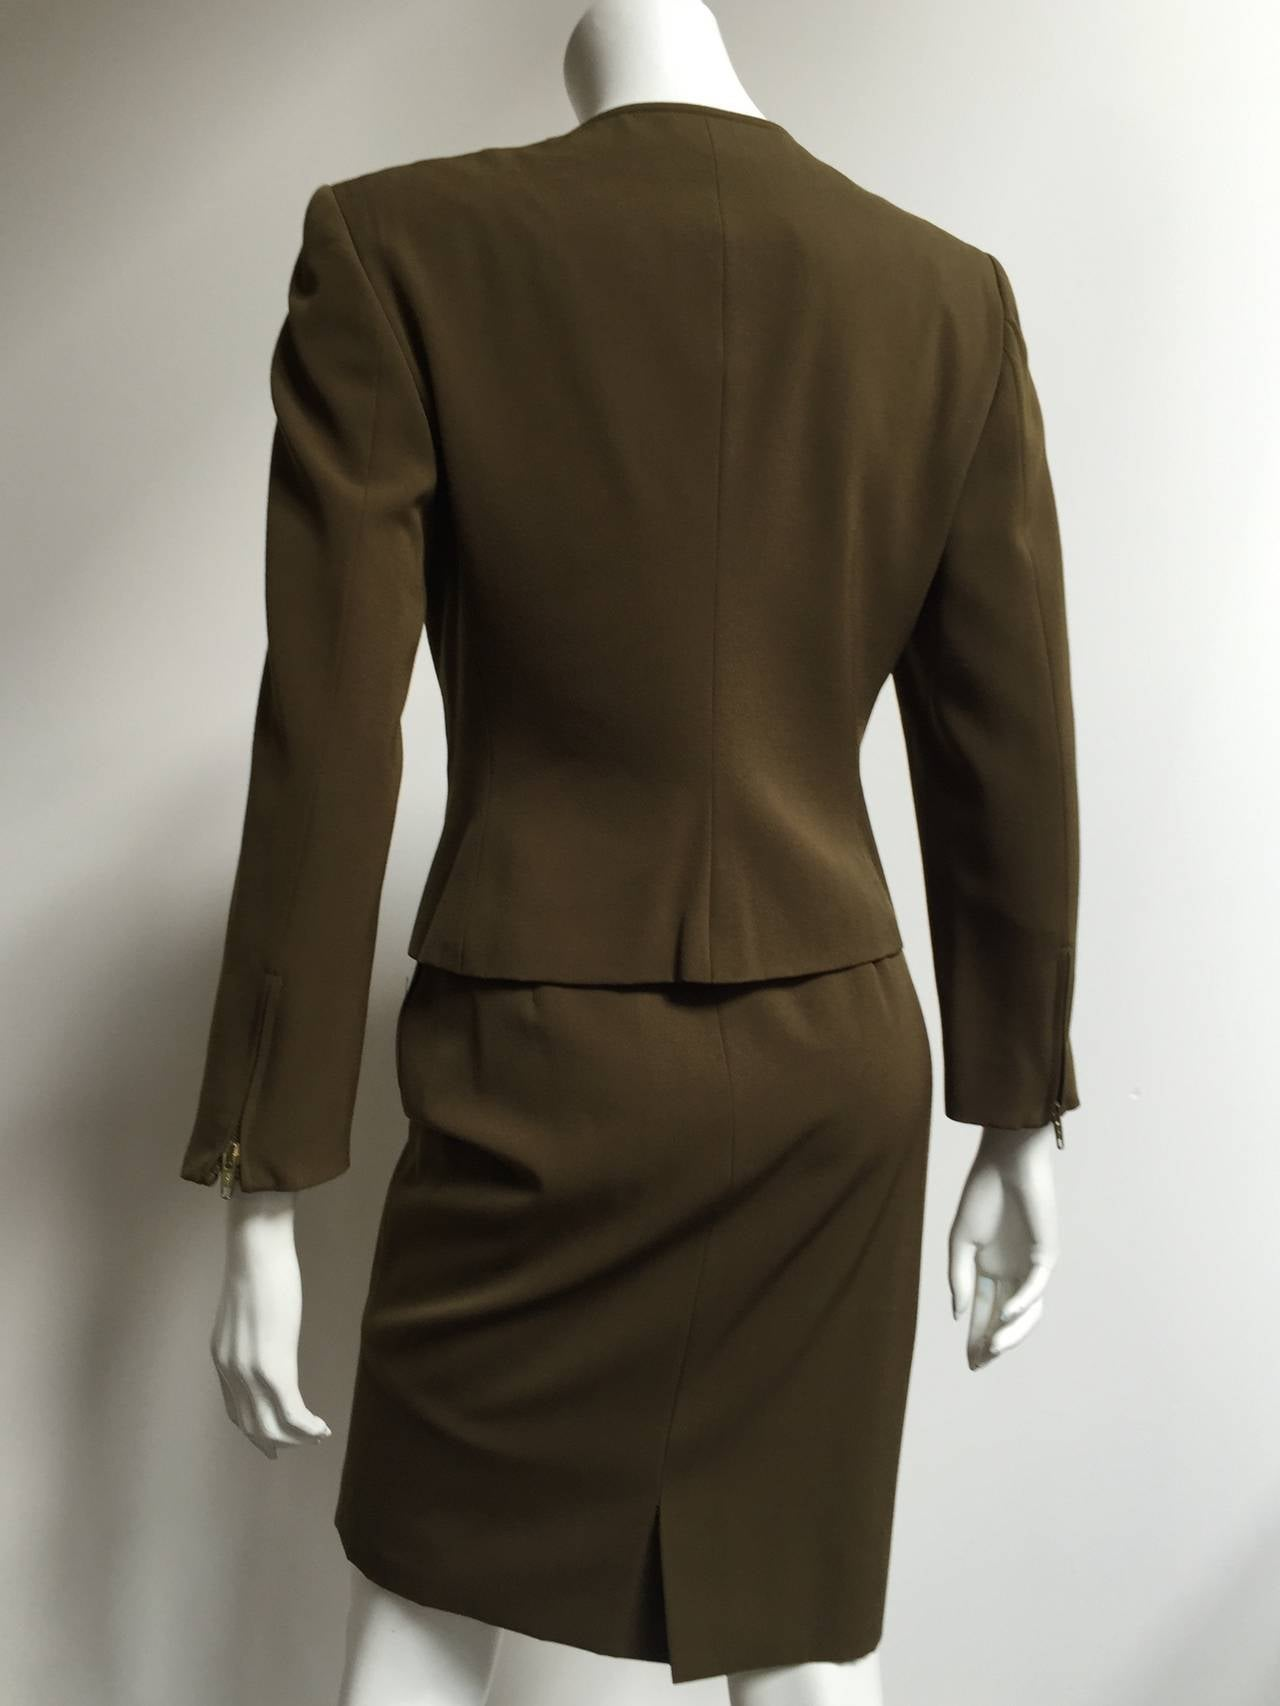 Genny by Versace Olive Skirt Suit Size 4  6